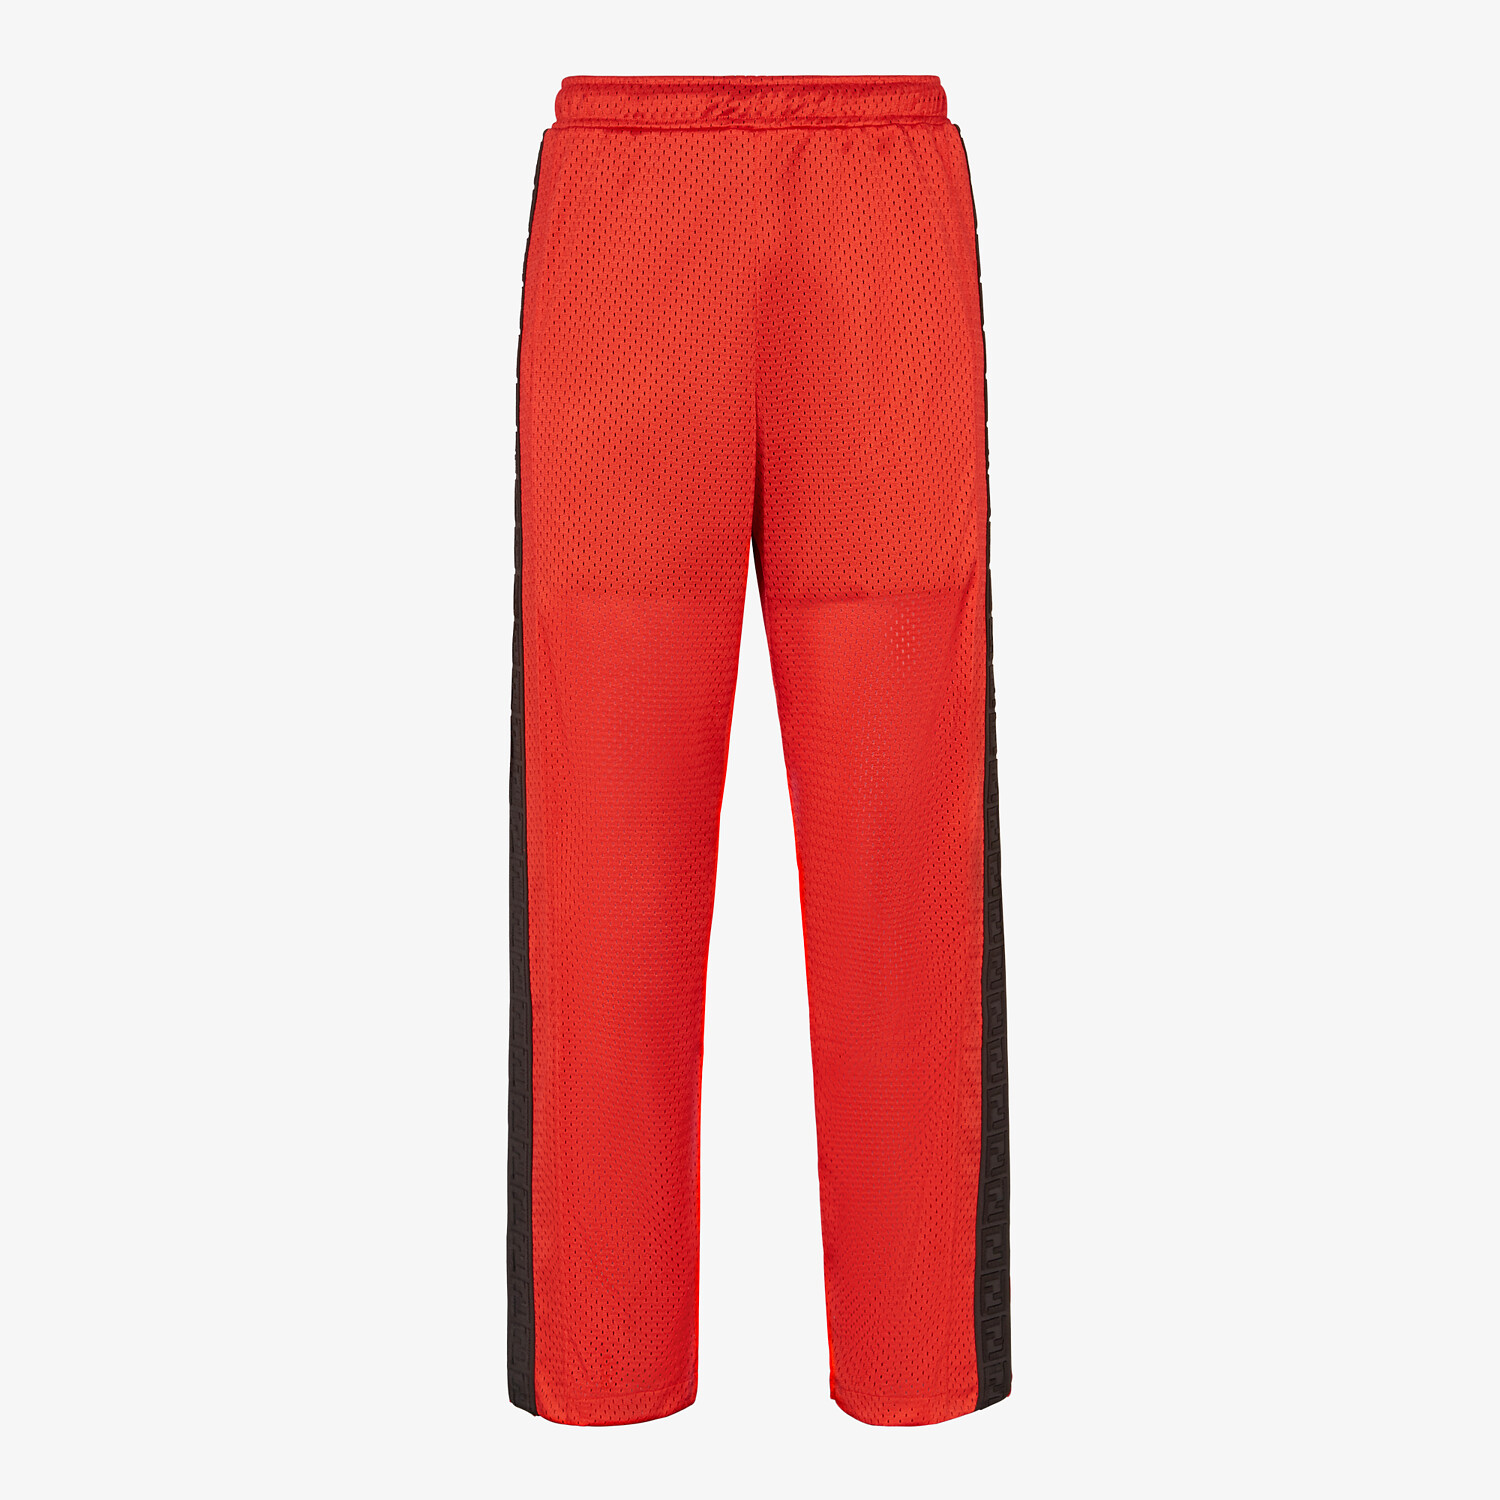 FENDI PANTS - Red tech mesh pants - view 1 detail